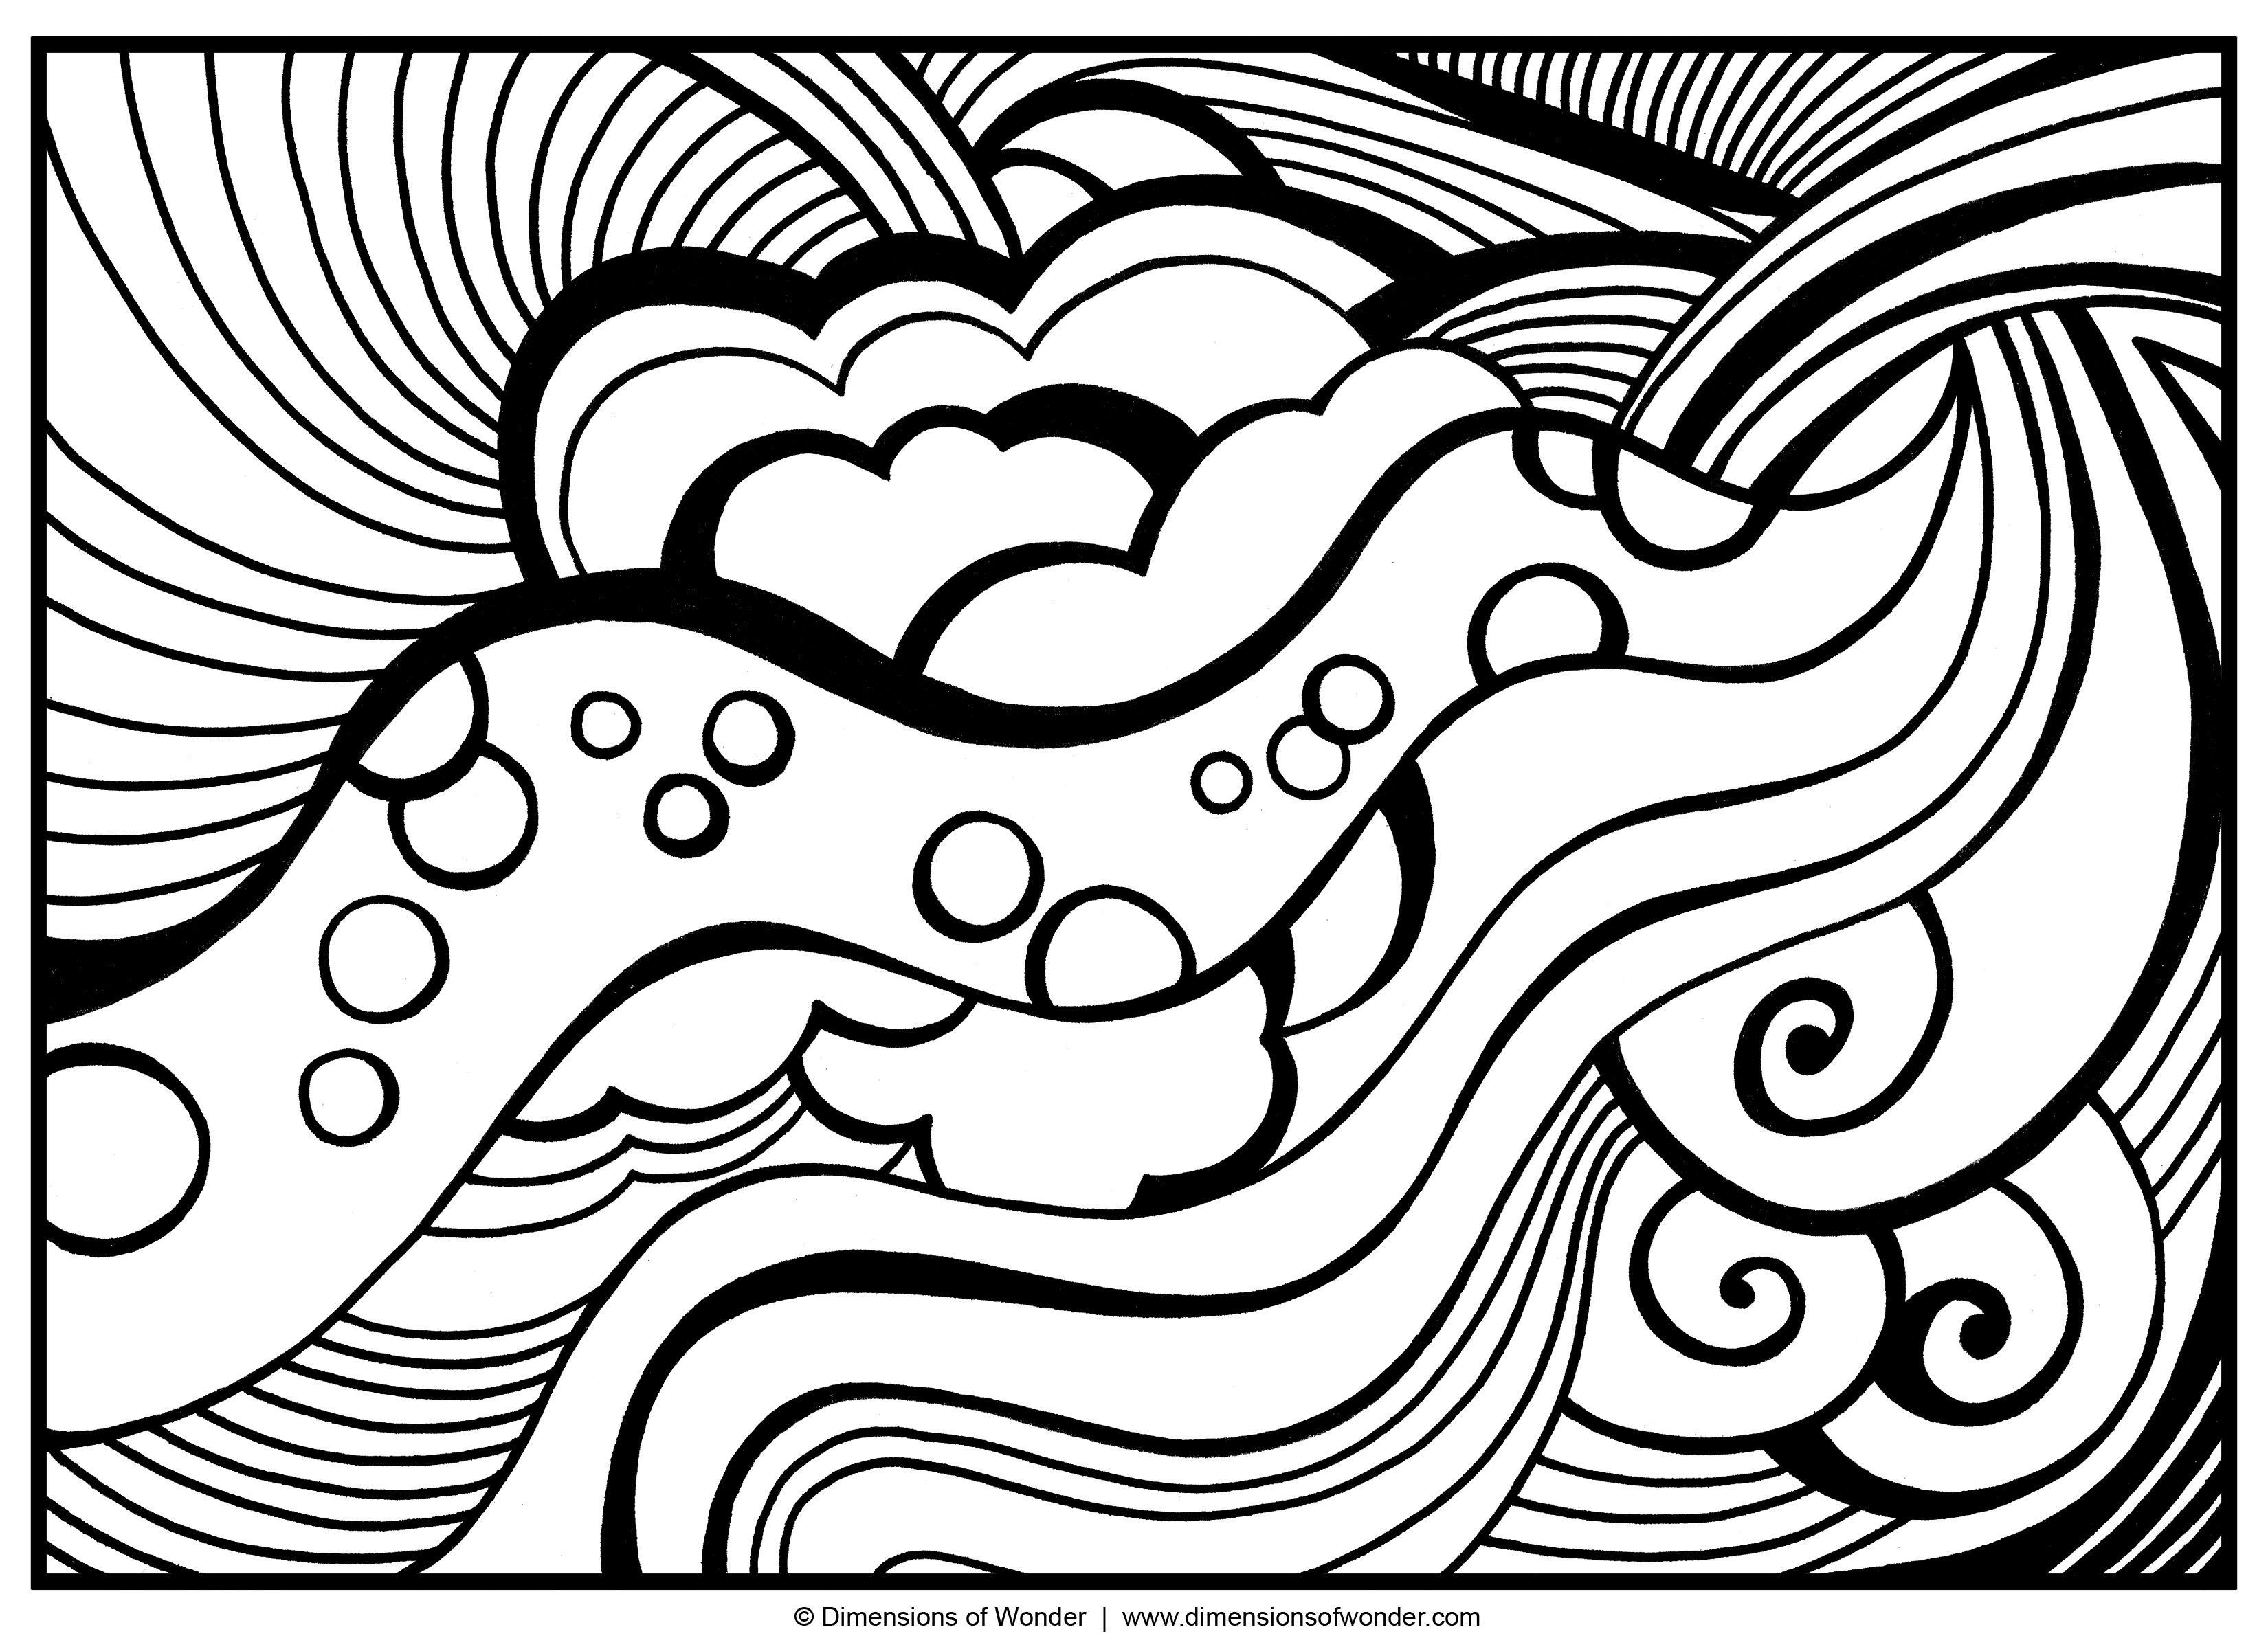 Abstract Coloring Pages Abstract Coloring Pages Coloring Pages